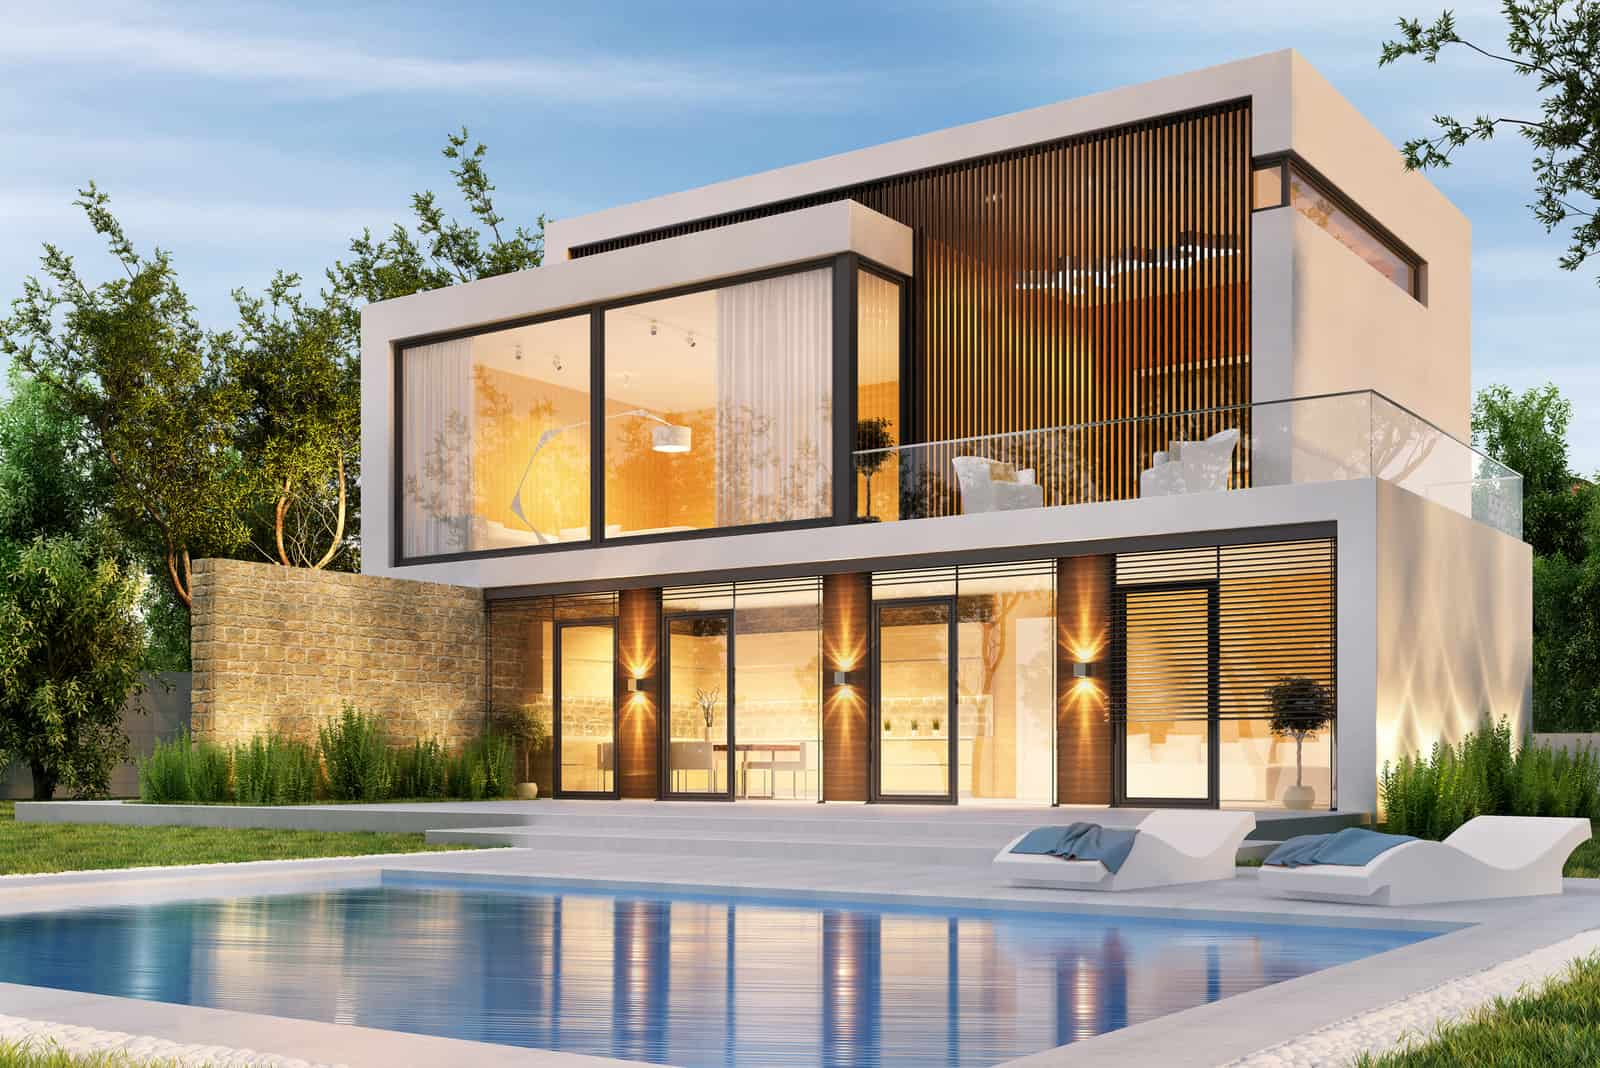 Evening view of a modern large house with swimming pool